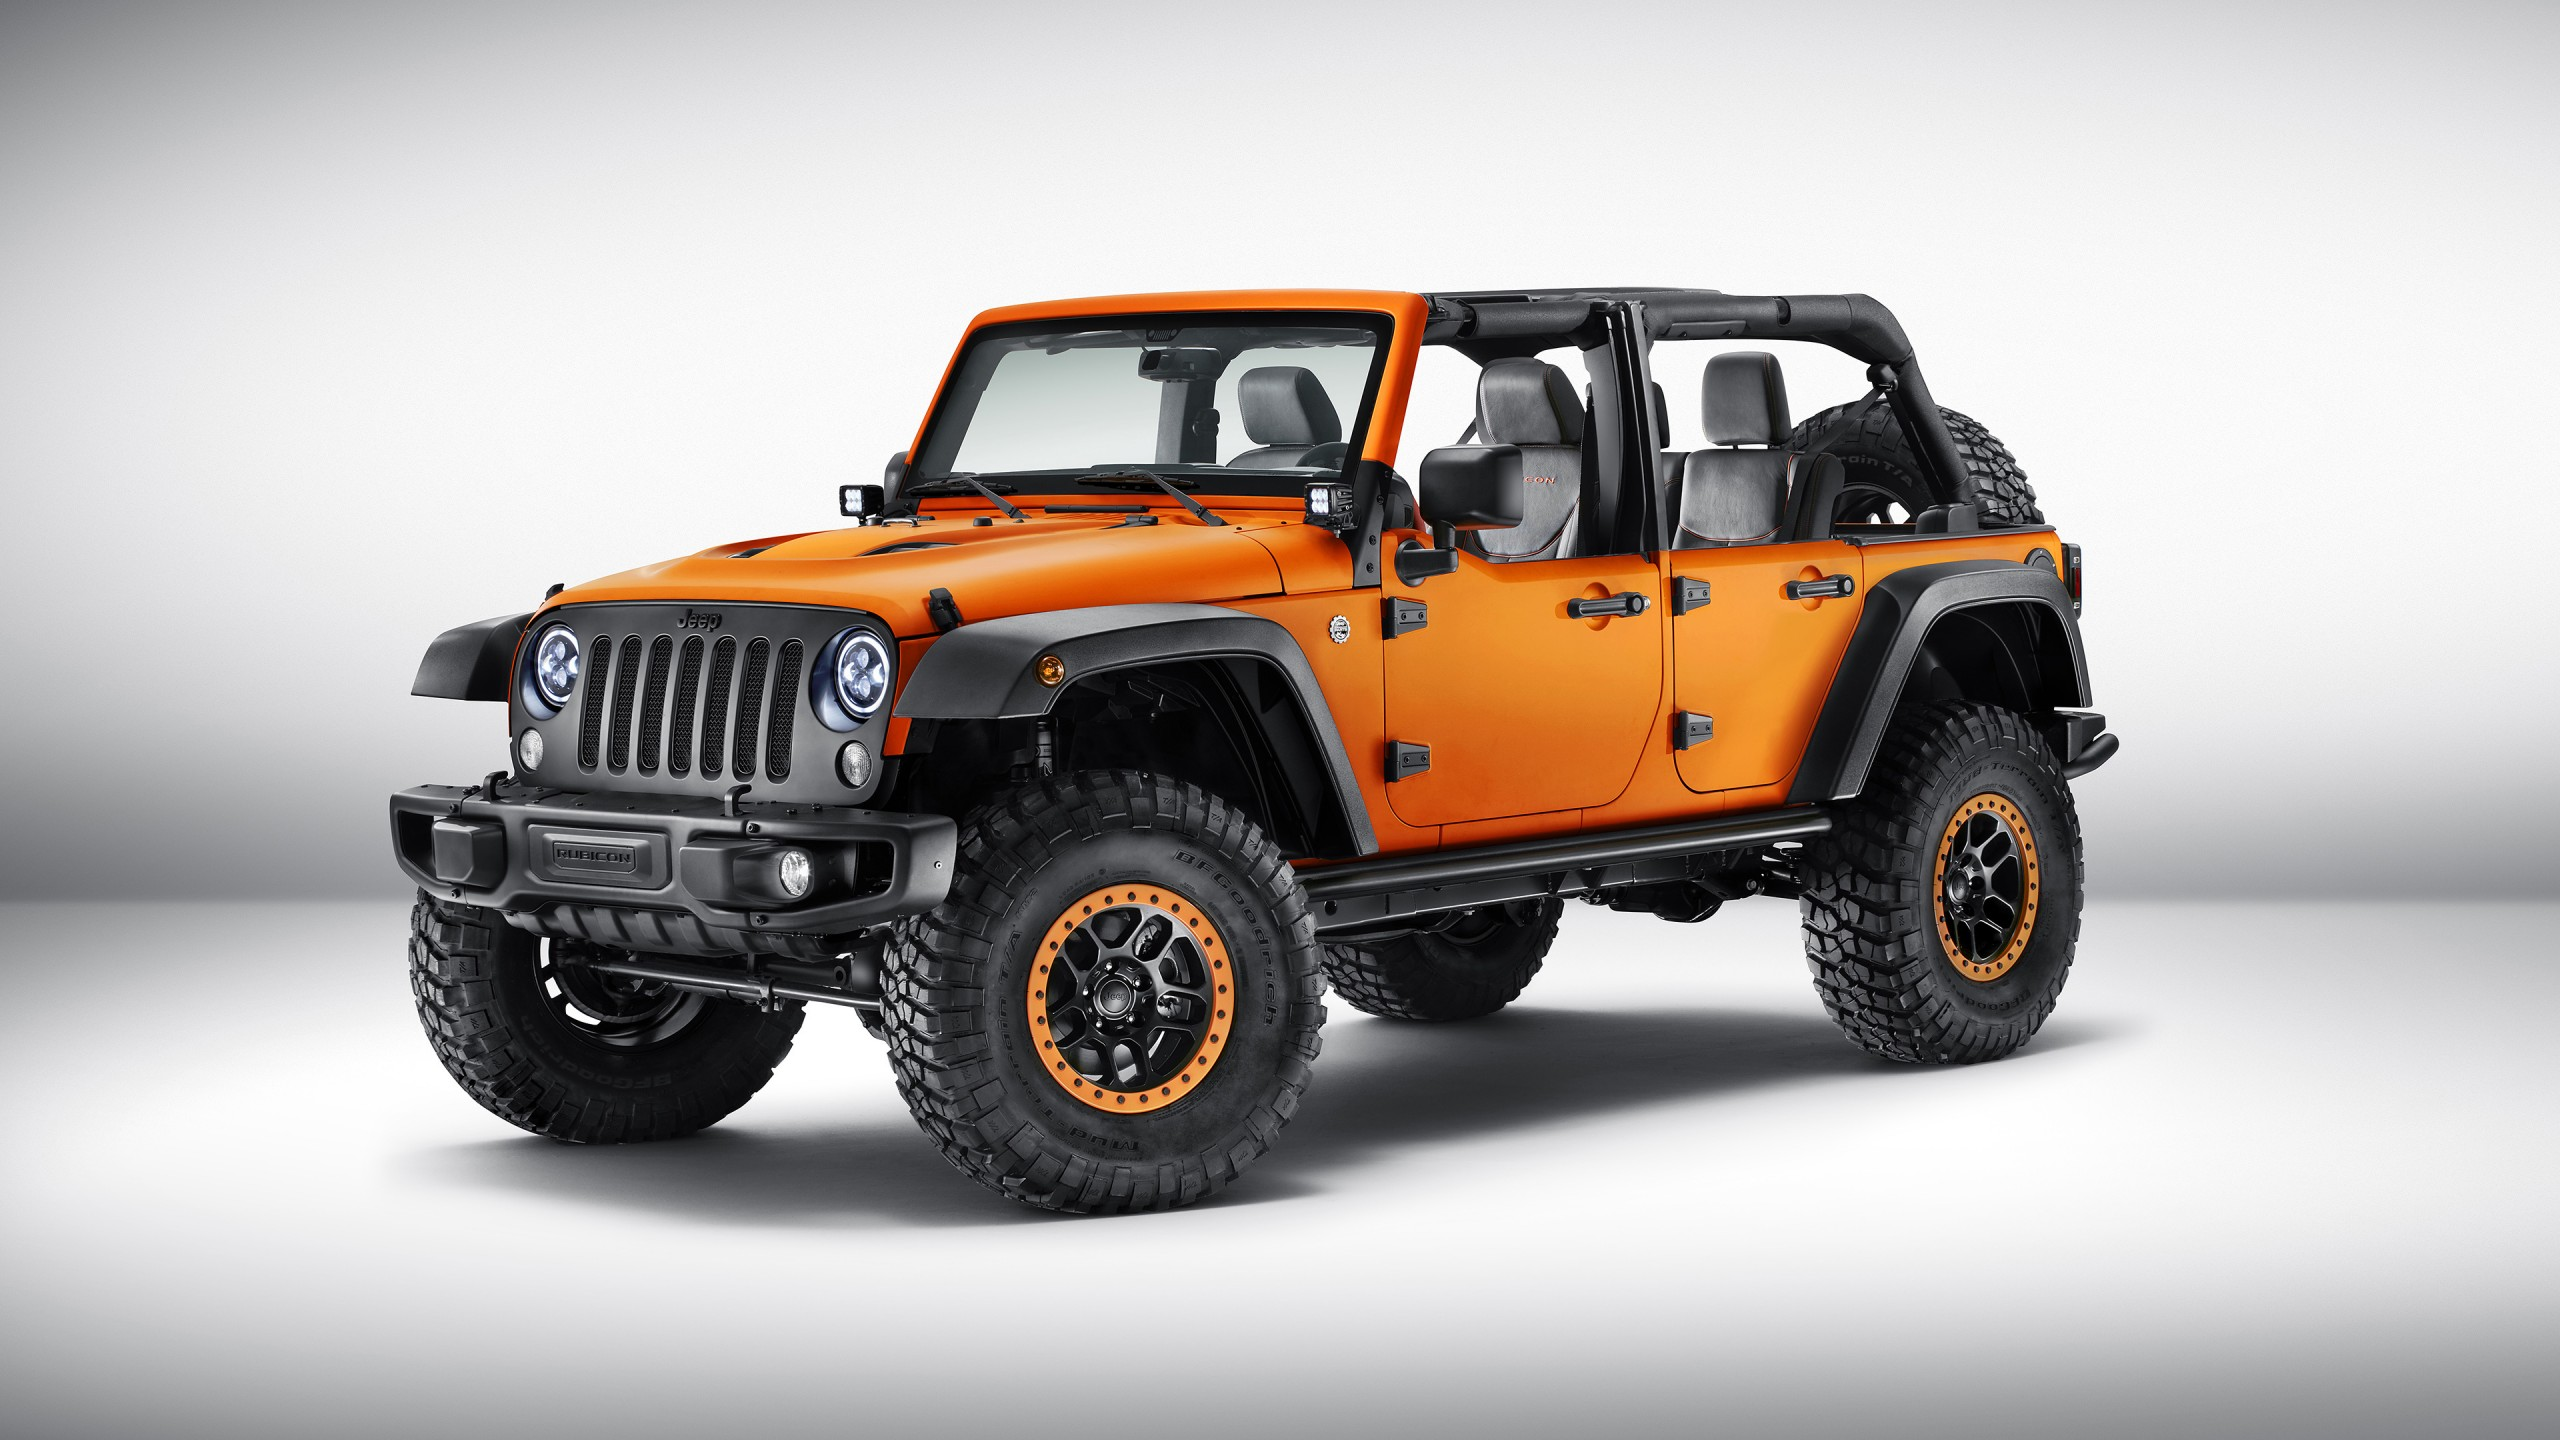 2015 jeep wrangler concept wallpaper hd car wallpapers. Cars Review. Best American Auto & Cars Review